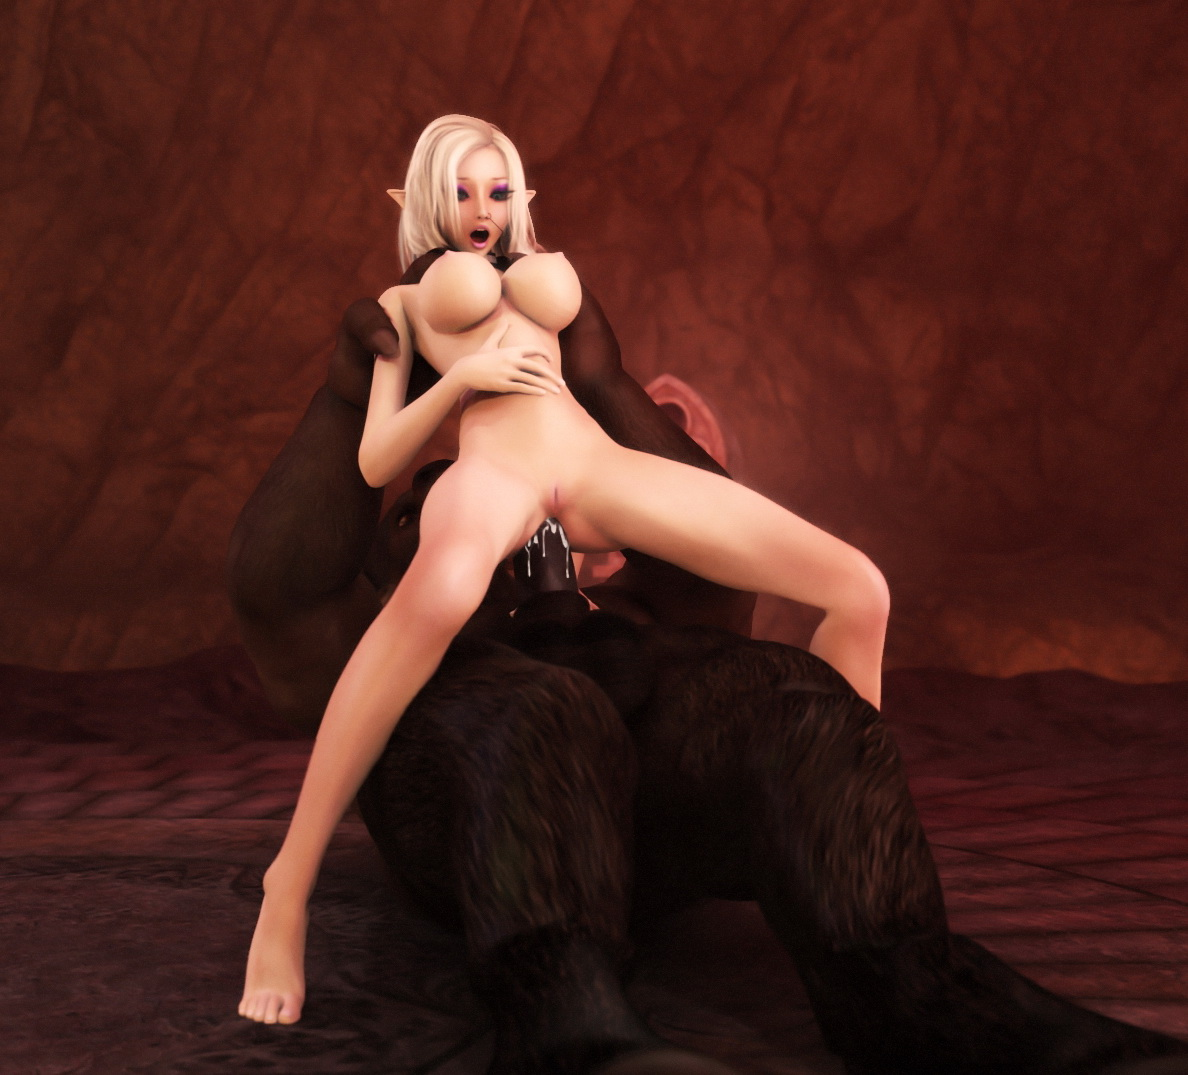 Porn blond elves erotic photo